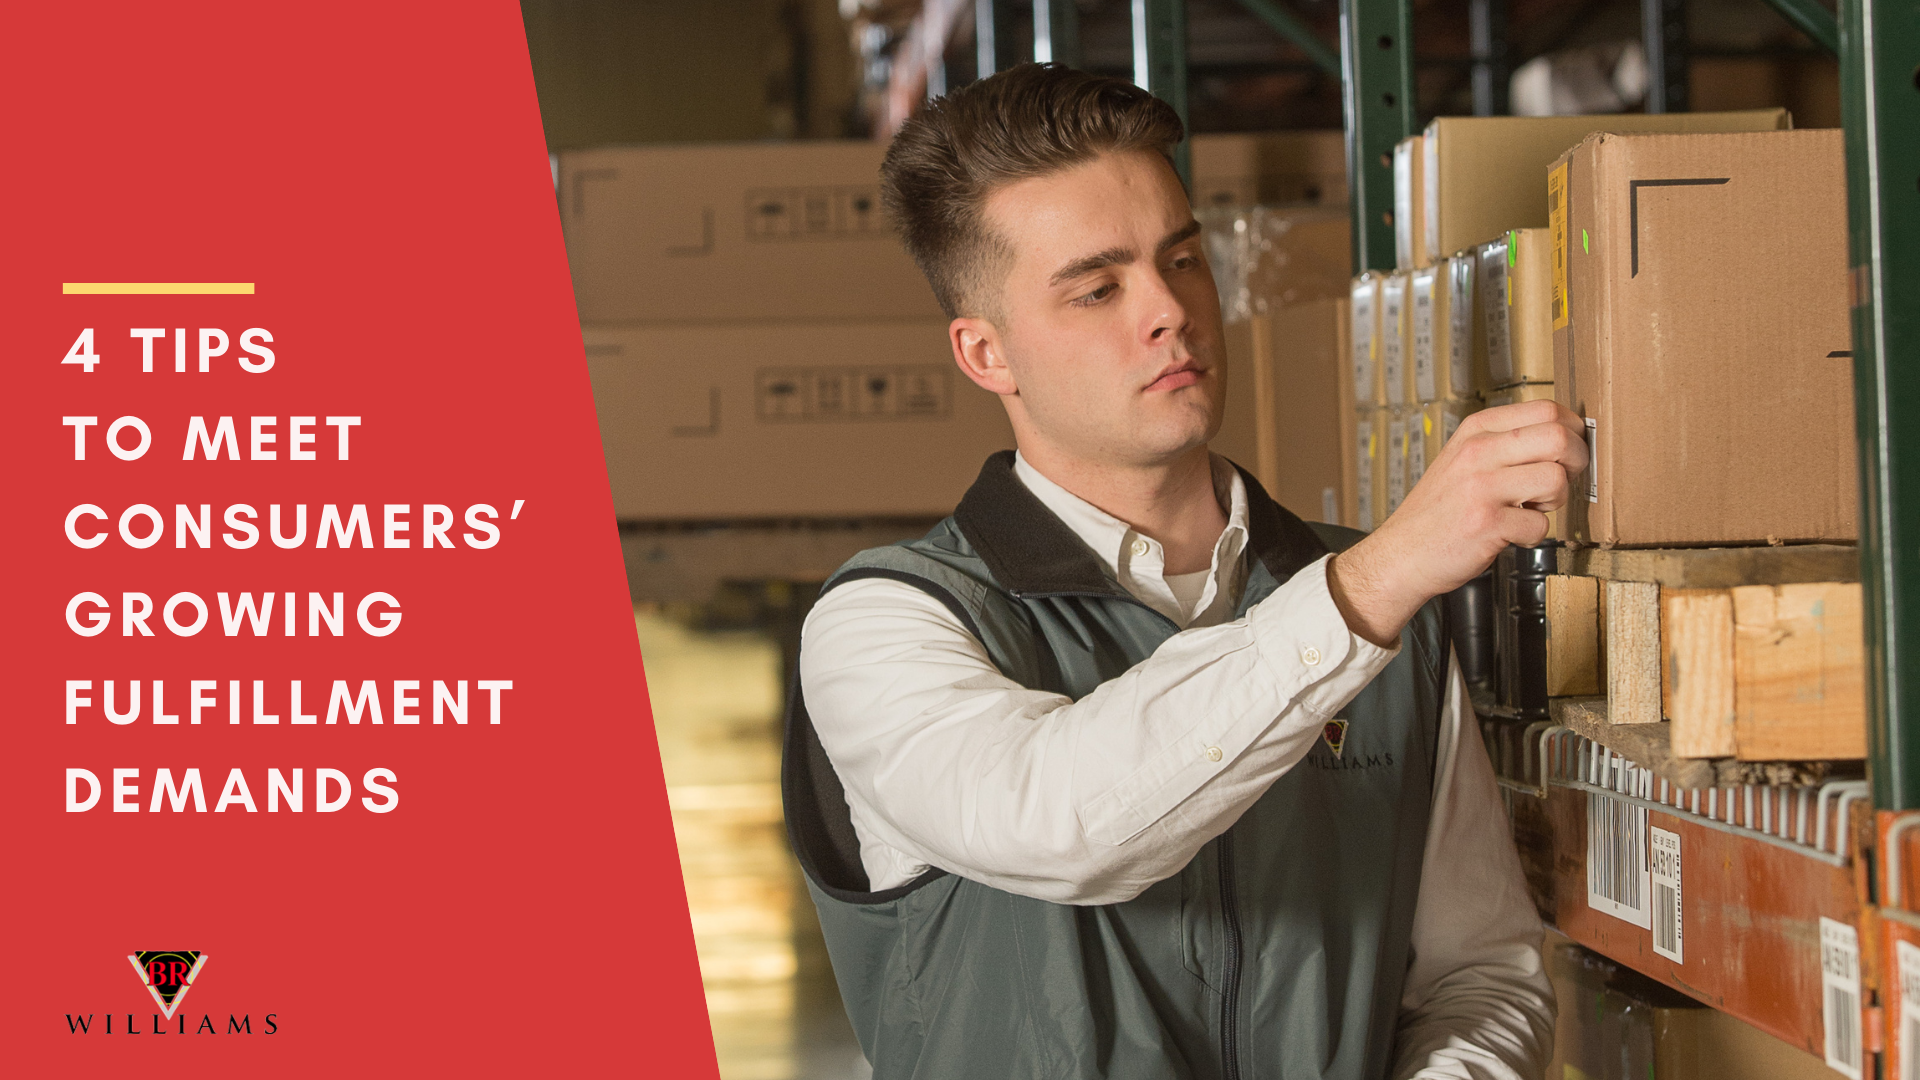 4 Tips to Meet Consumers' Growing Fulfillment Demands